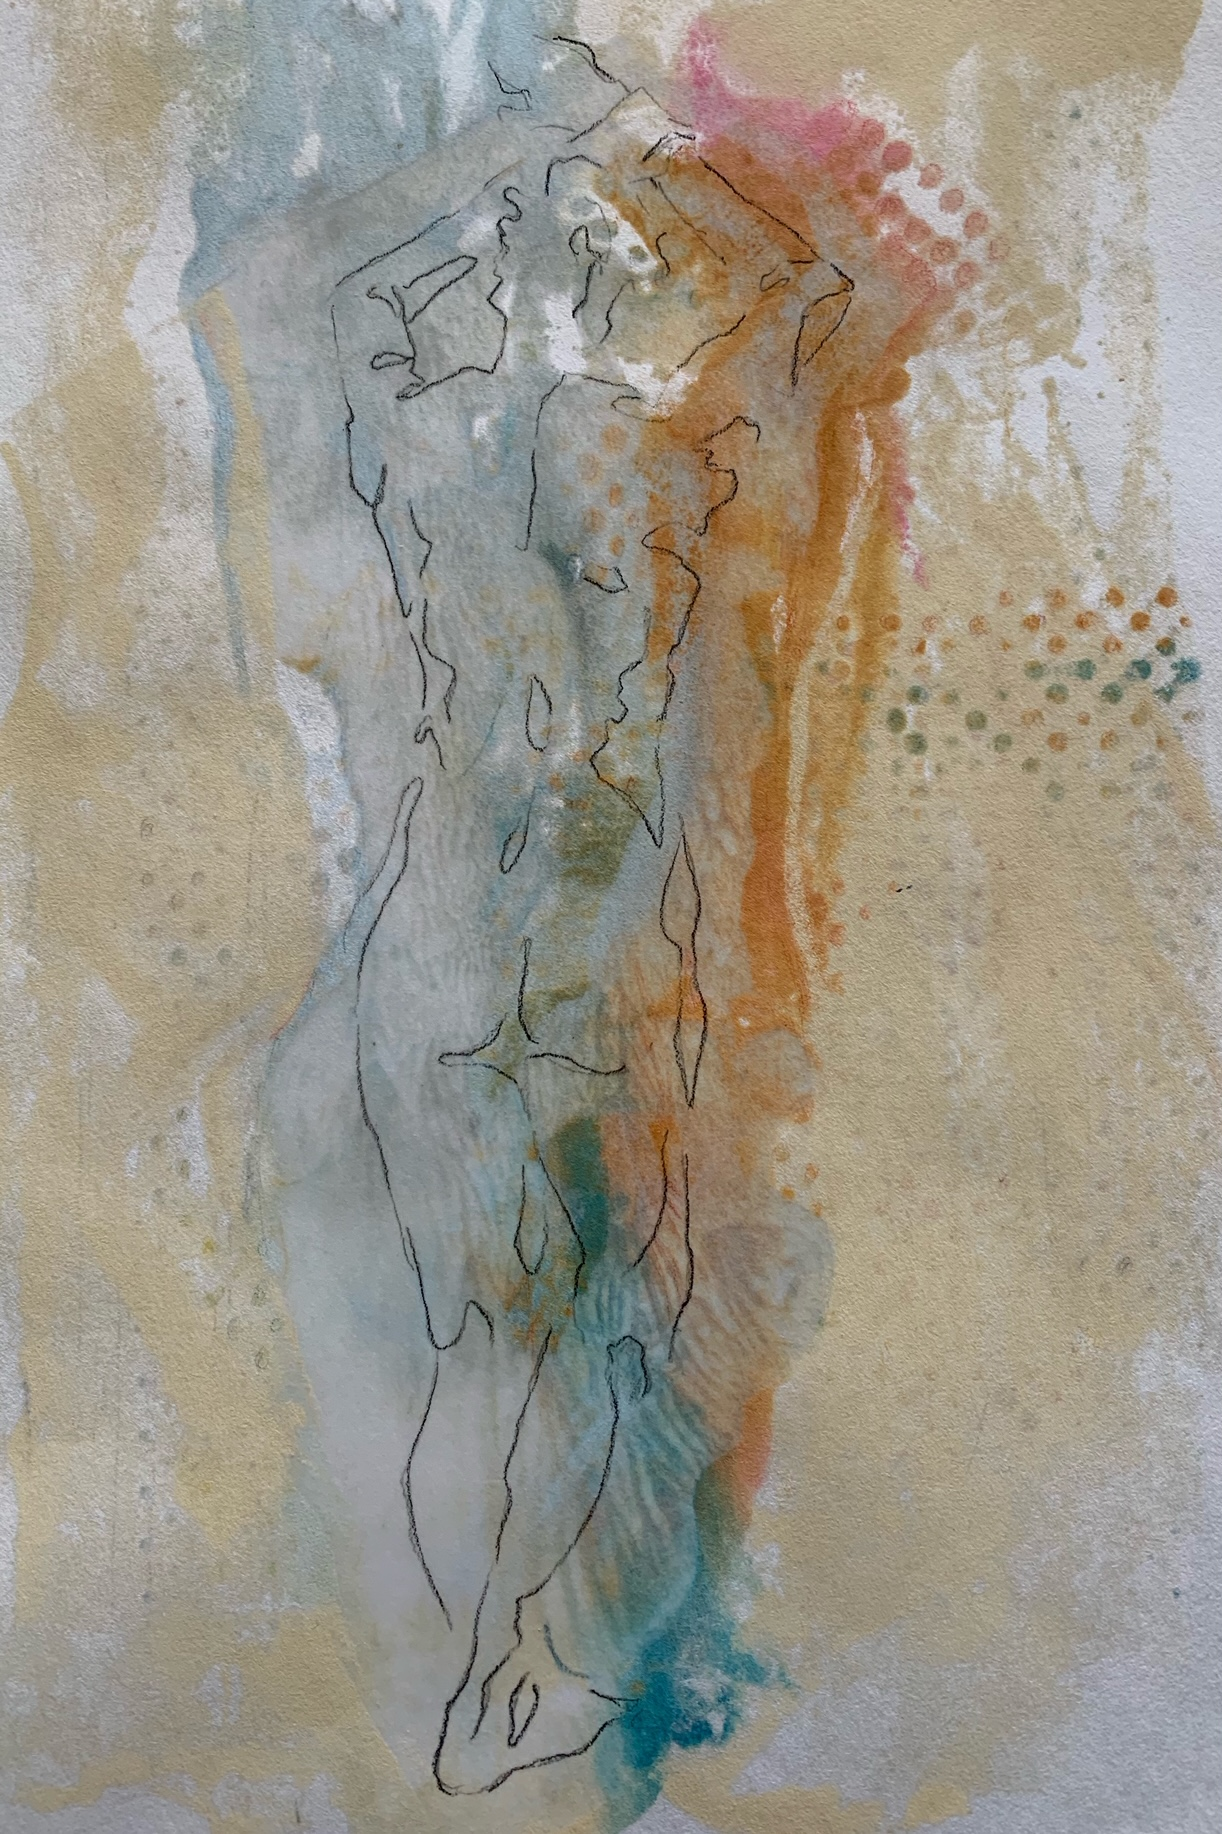 Dancer I, 10 x 8 in., Drawing on Encaustic Monotype, SOLD